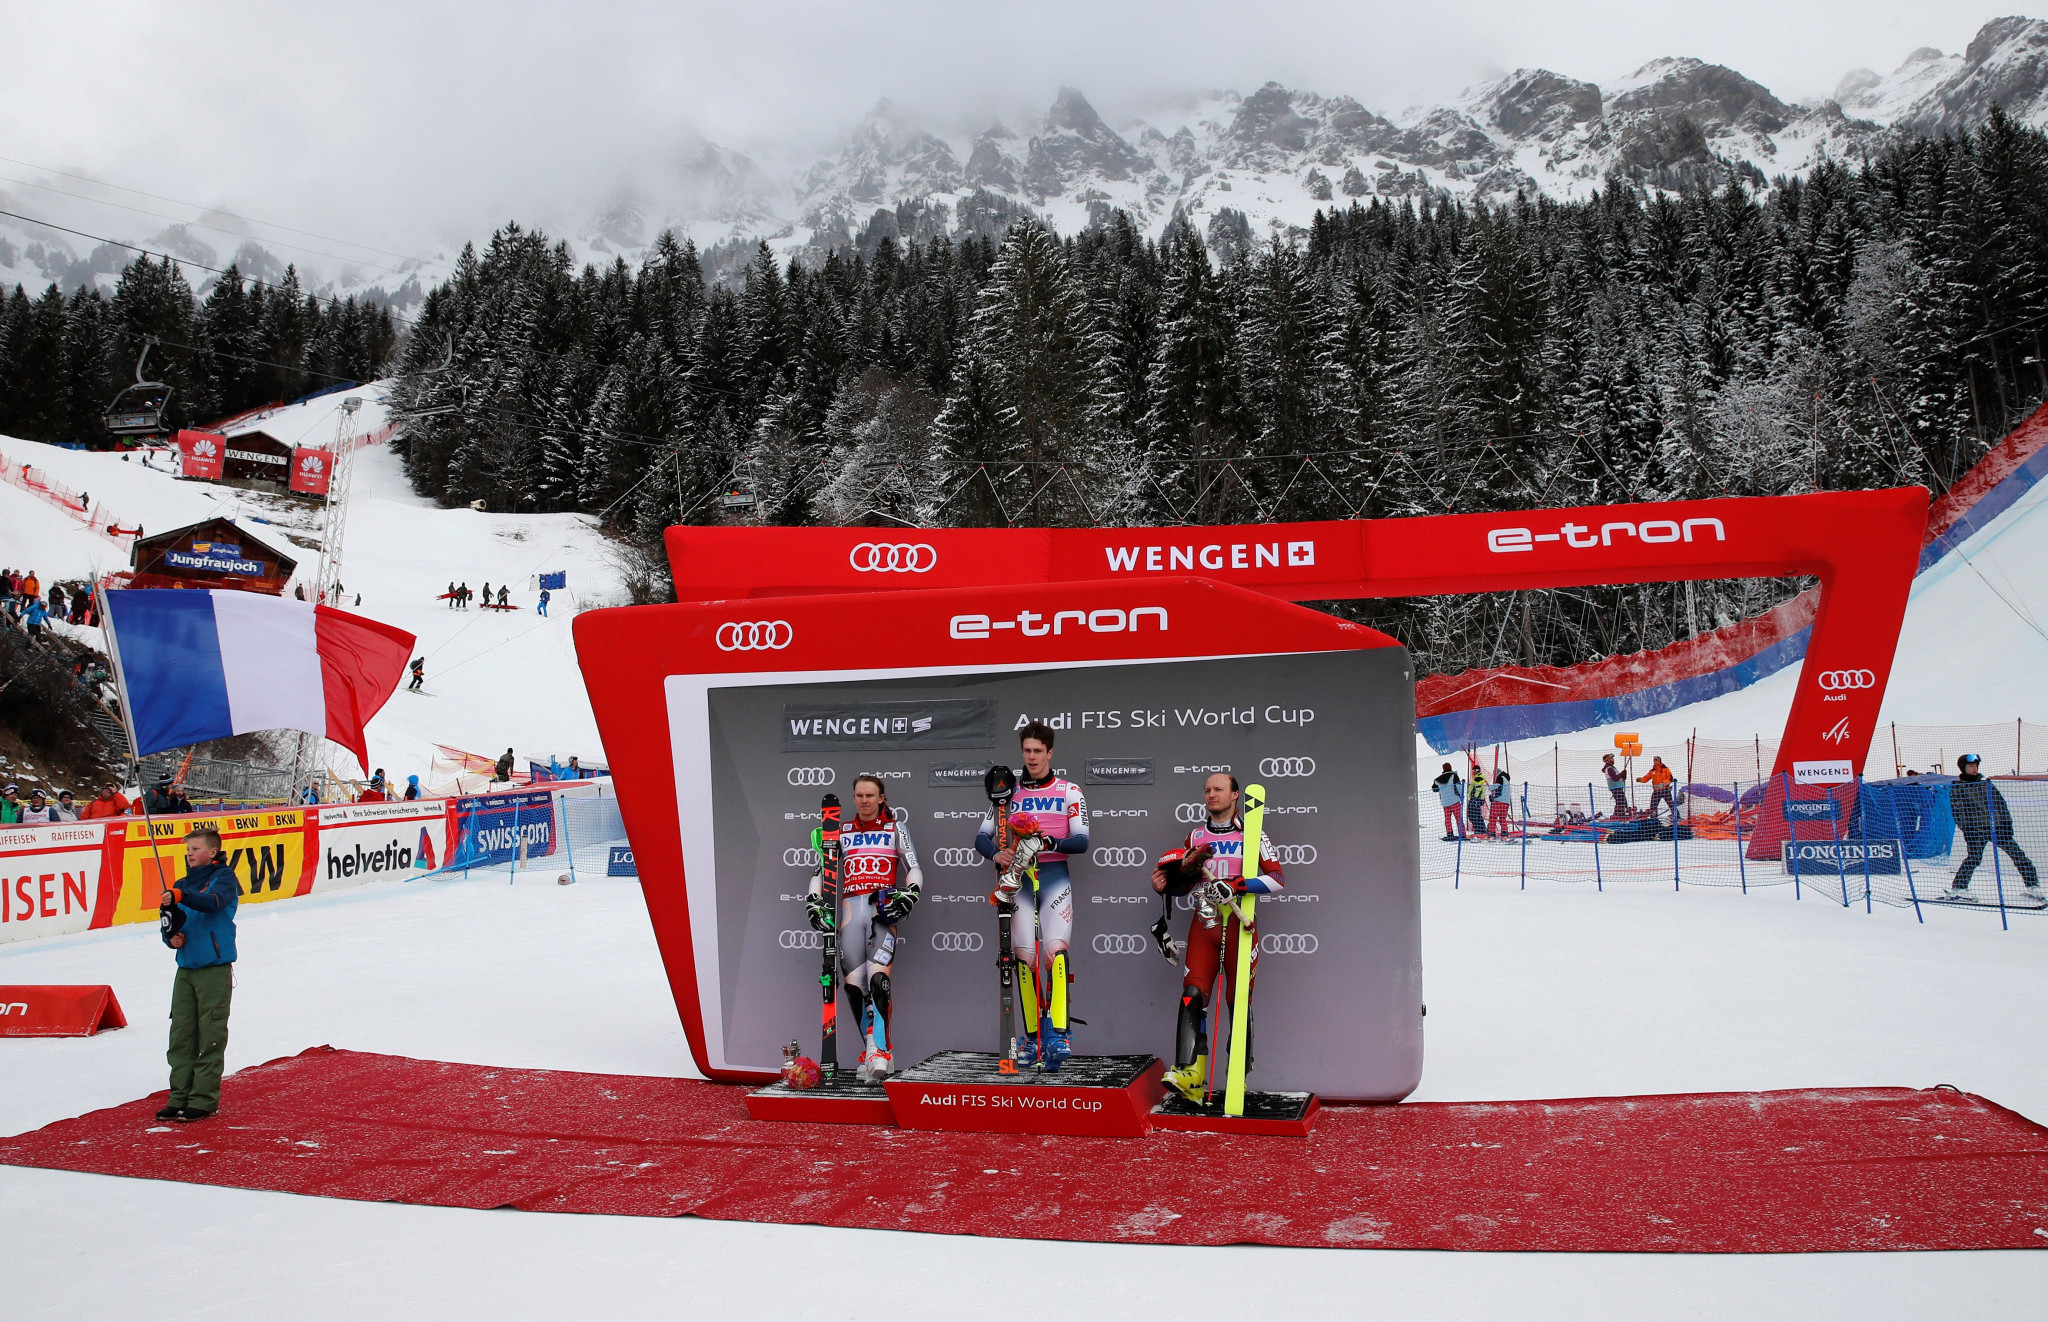 FIS Alpine Ski World Cup in Wengen cancelled due to rise in COVID-19 cases